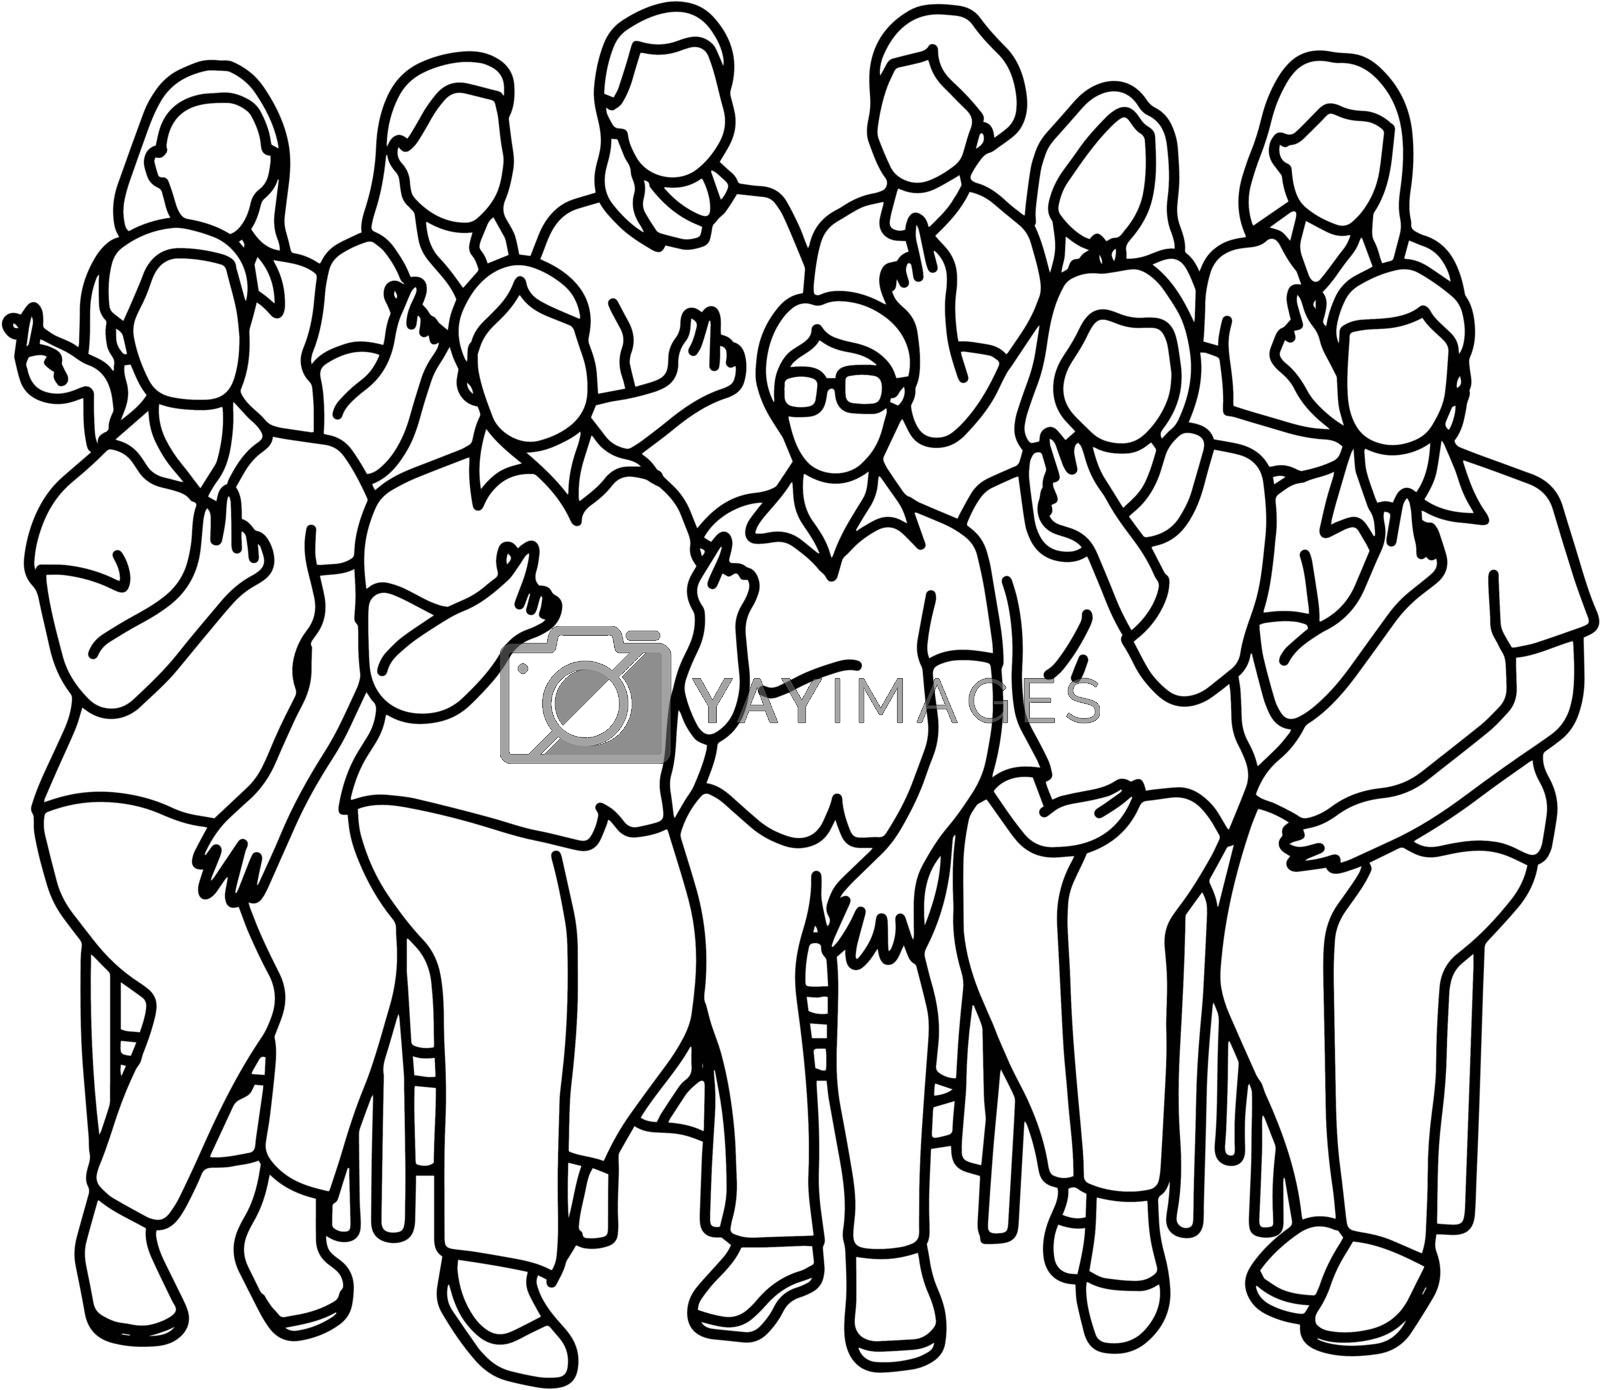 group of women showing mini heart gesture vector illustration sketch doodle hand drawn with black lines isolated on white background. Teamwork concept.